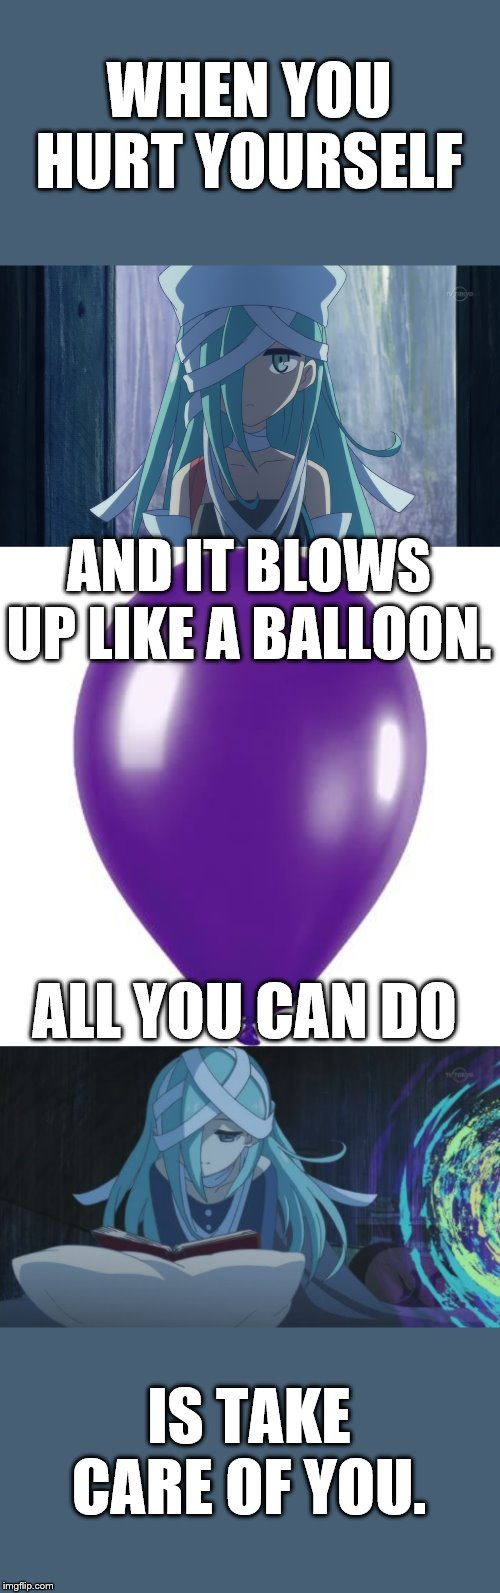 WHEN YOU HURT YOURSELF IS TAKE CARE OF YOU. ALL YOU CAN DO AND IT BLOWS UP LIKE A BALLOON. | image tagged in memes,hurt,yourself,take,care,rest | made w/ Imgflip meme maker